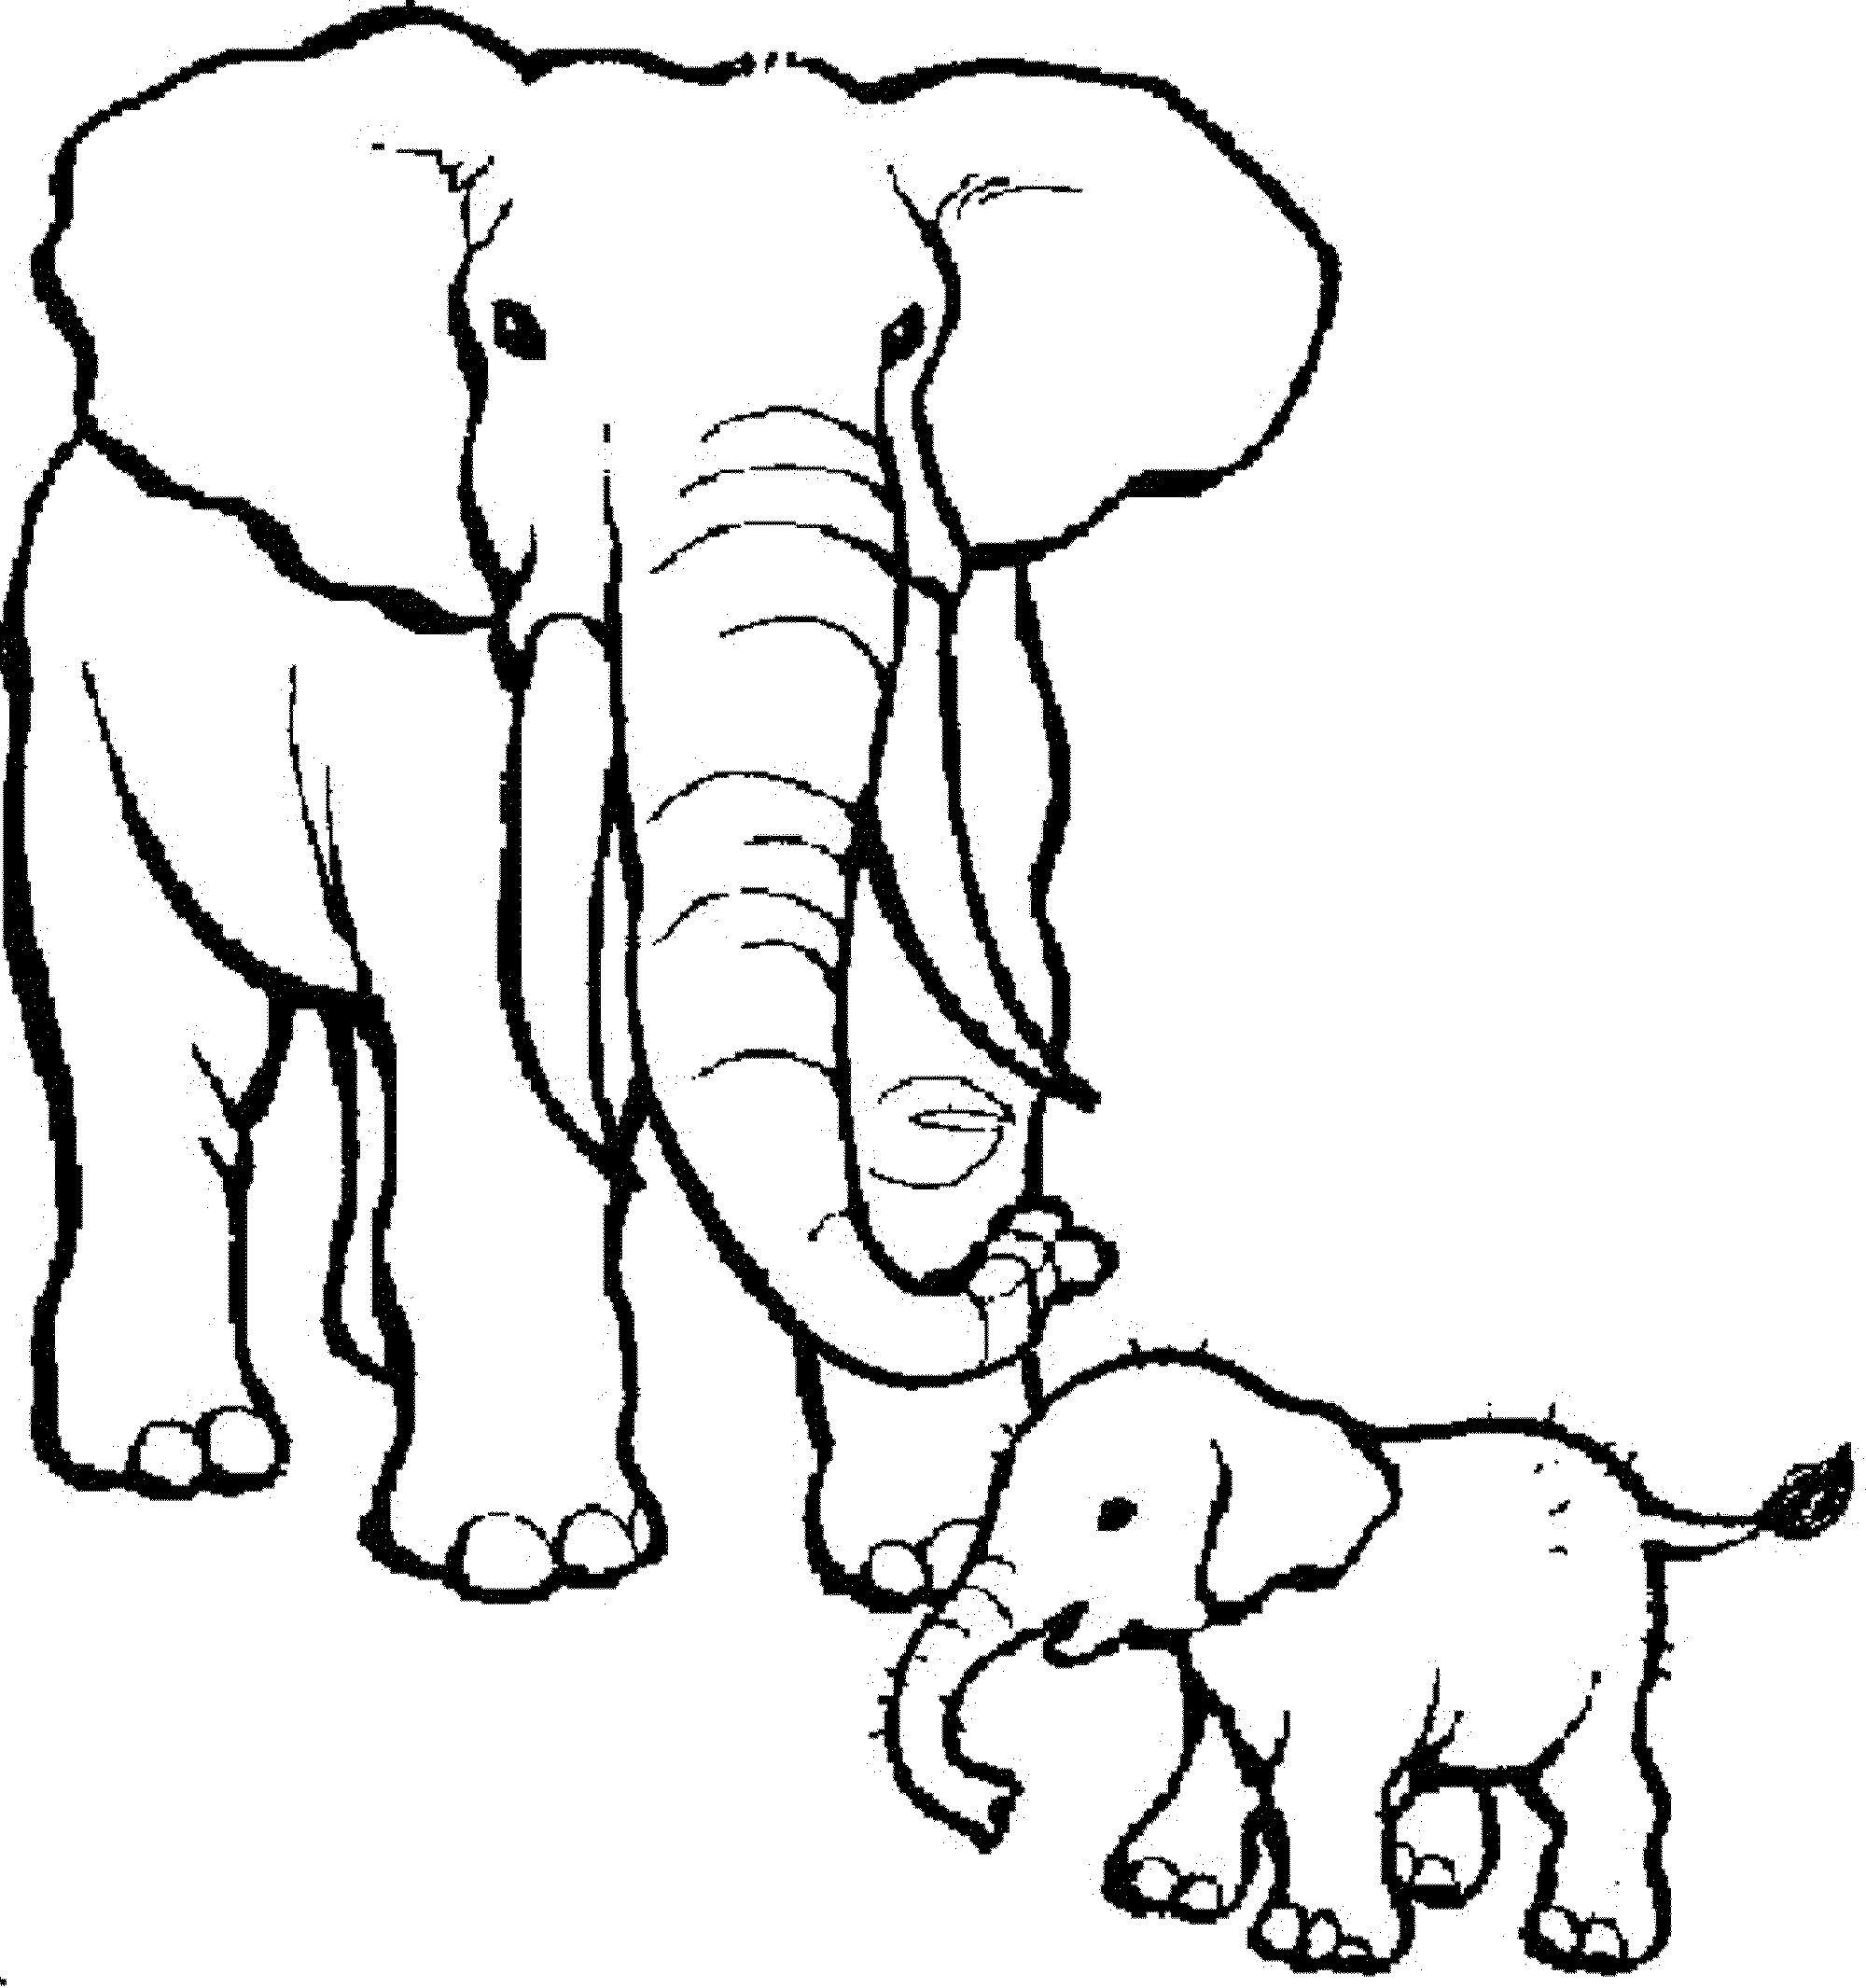 Print & Download - Teaching Kids through Elephant Coloring ...